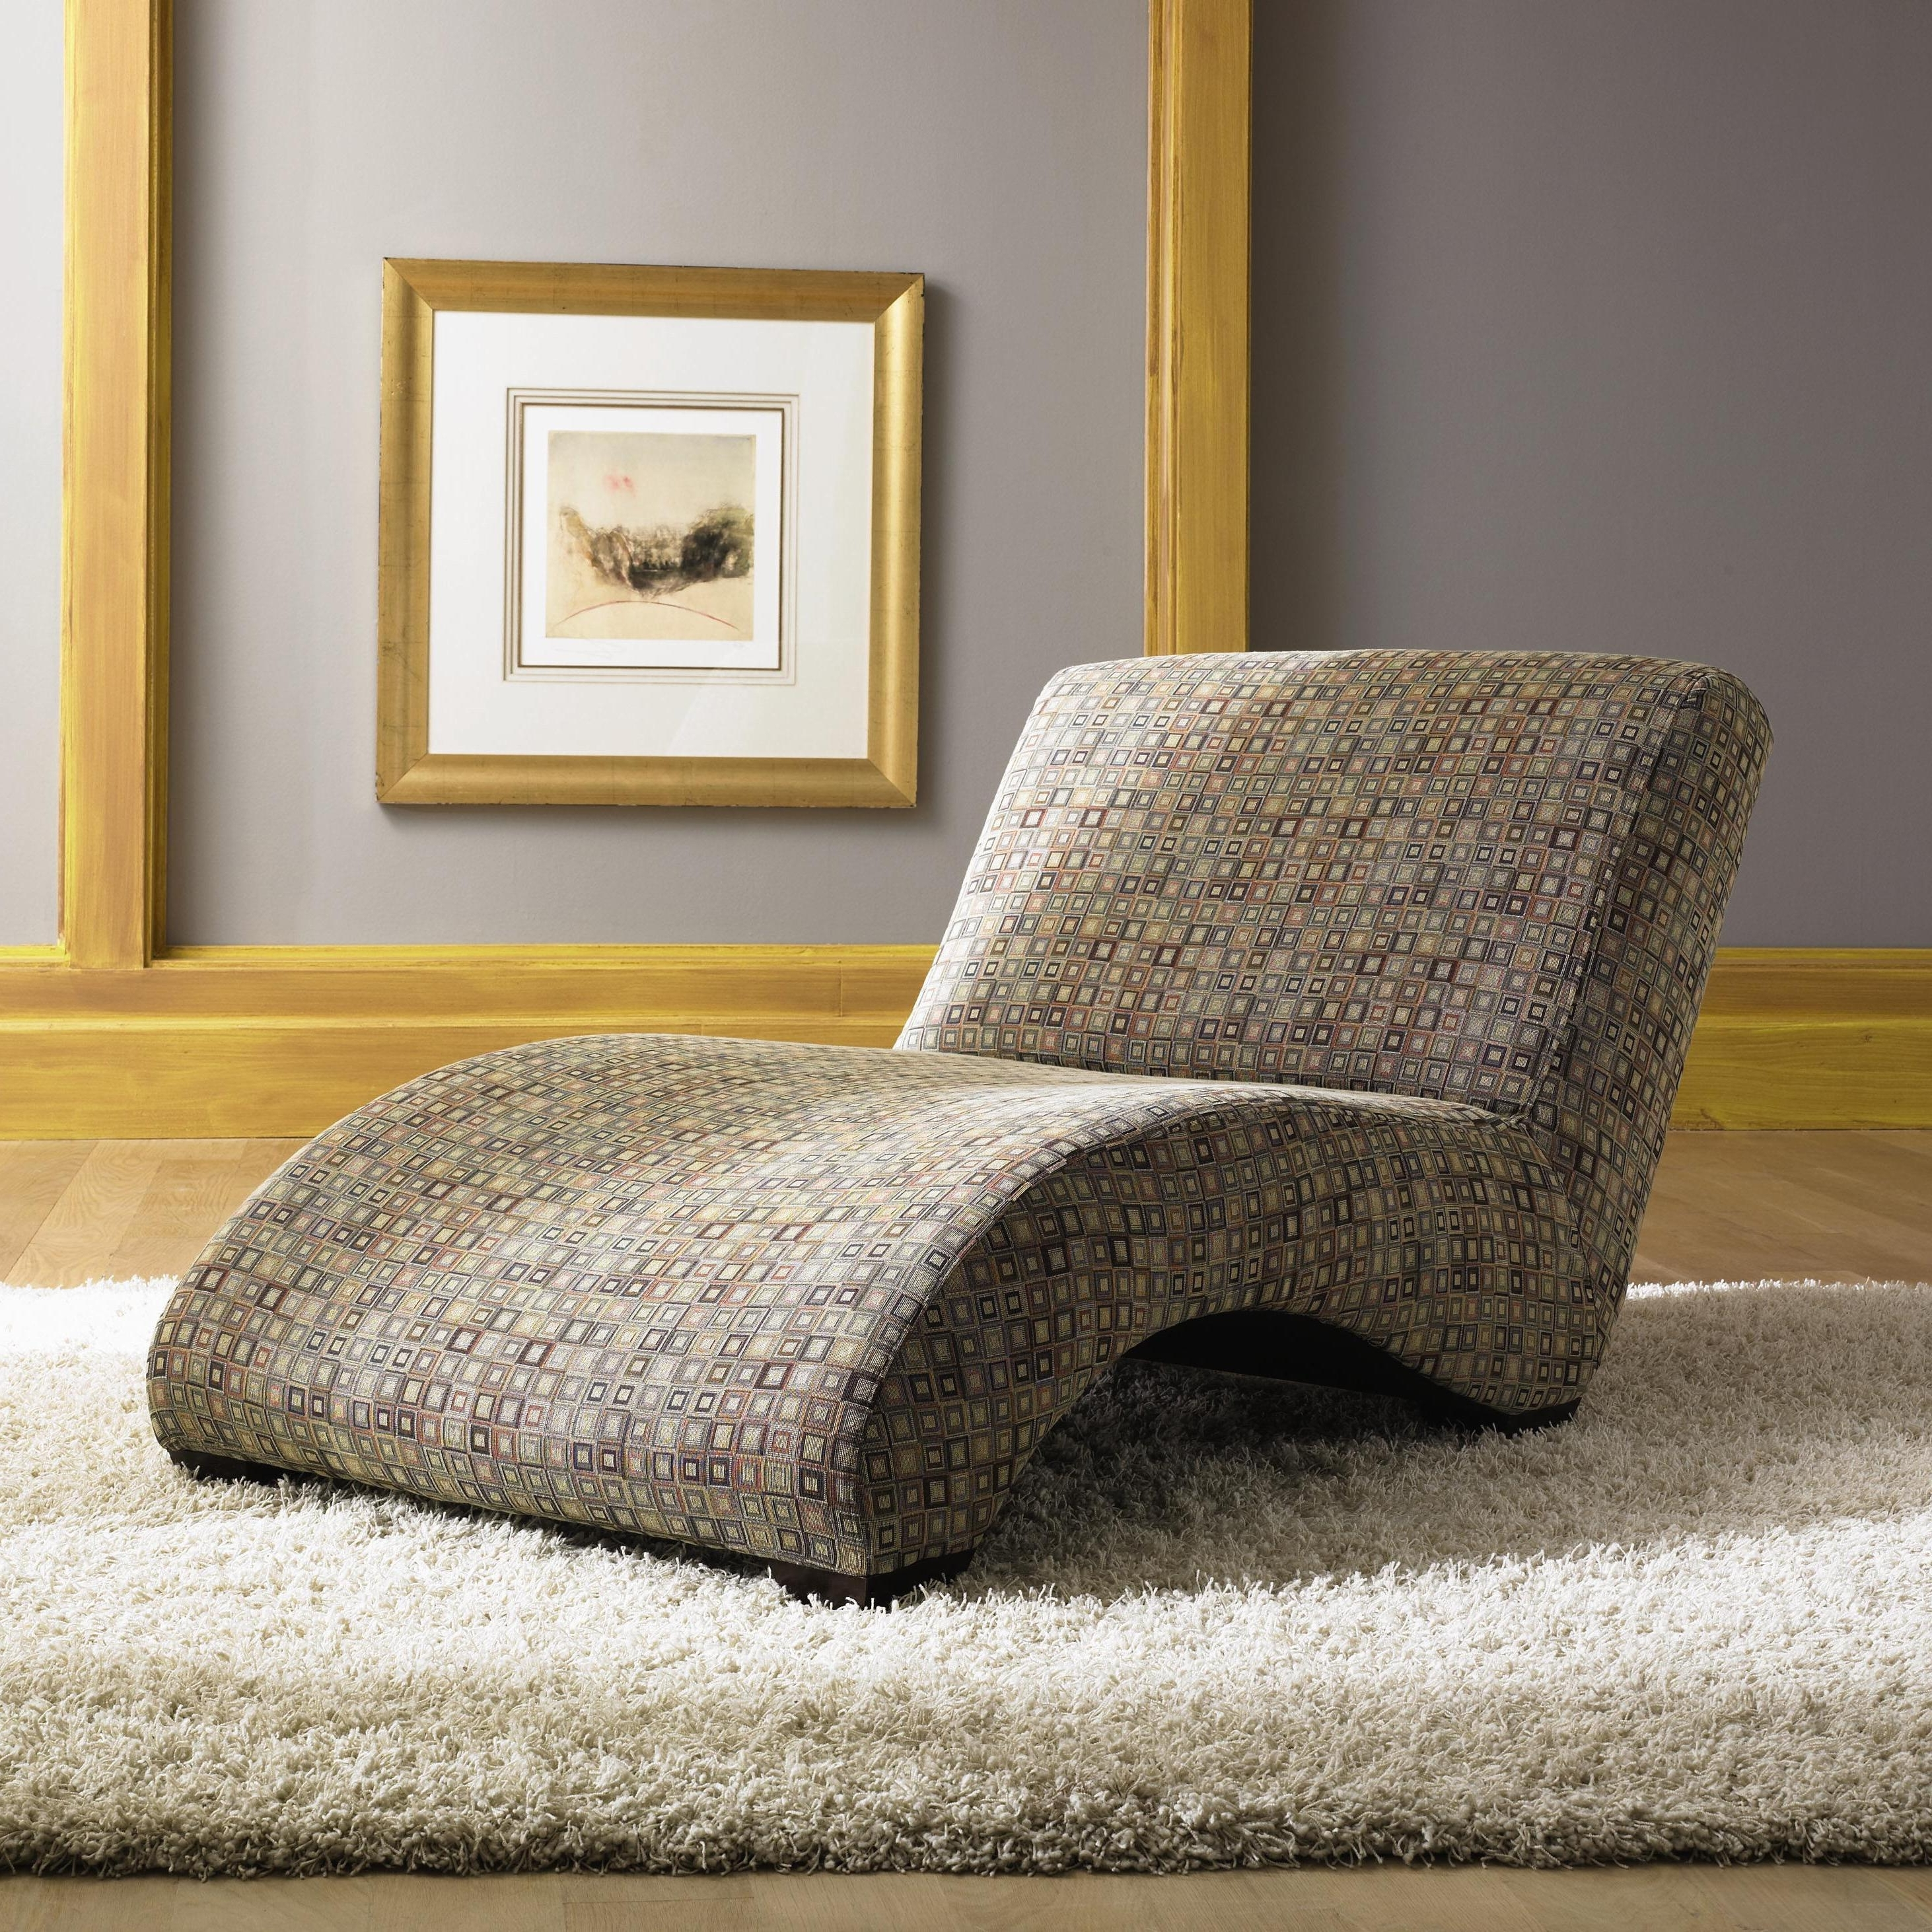 Well Known Convertible Chair : Small Chaise Lounge Oversized Living Room For Double Chaise Lounges For Living Room (View 15 of 15)